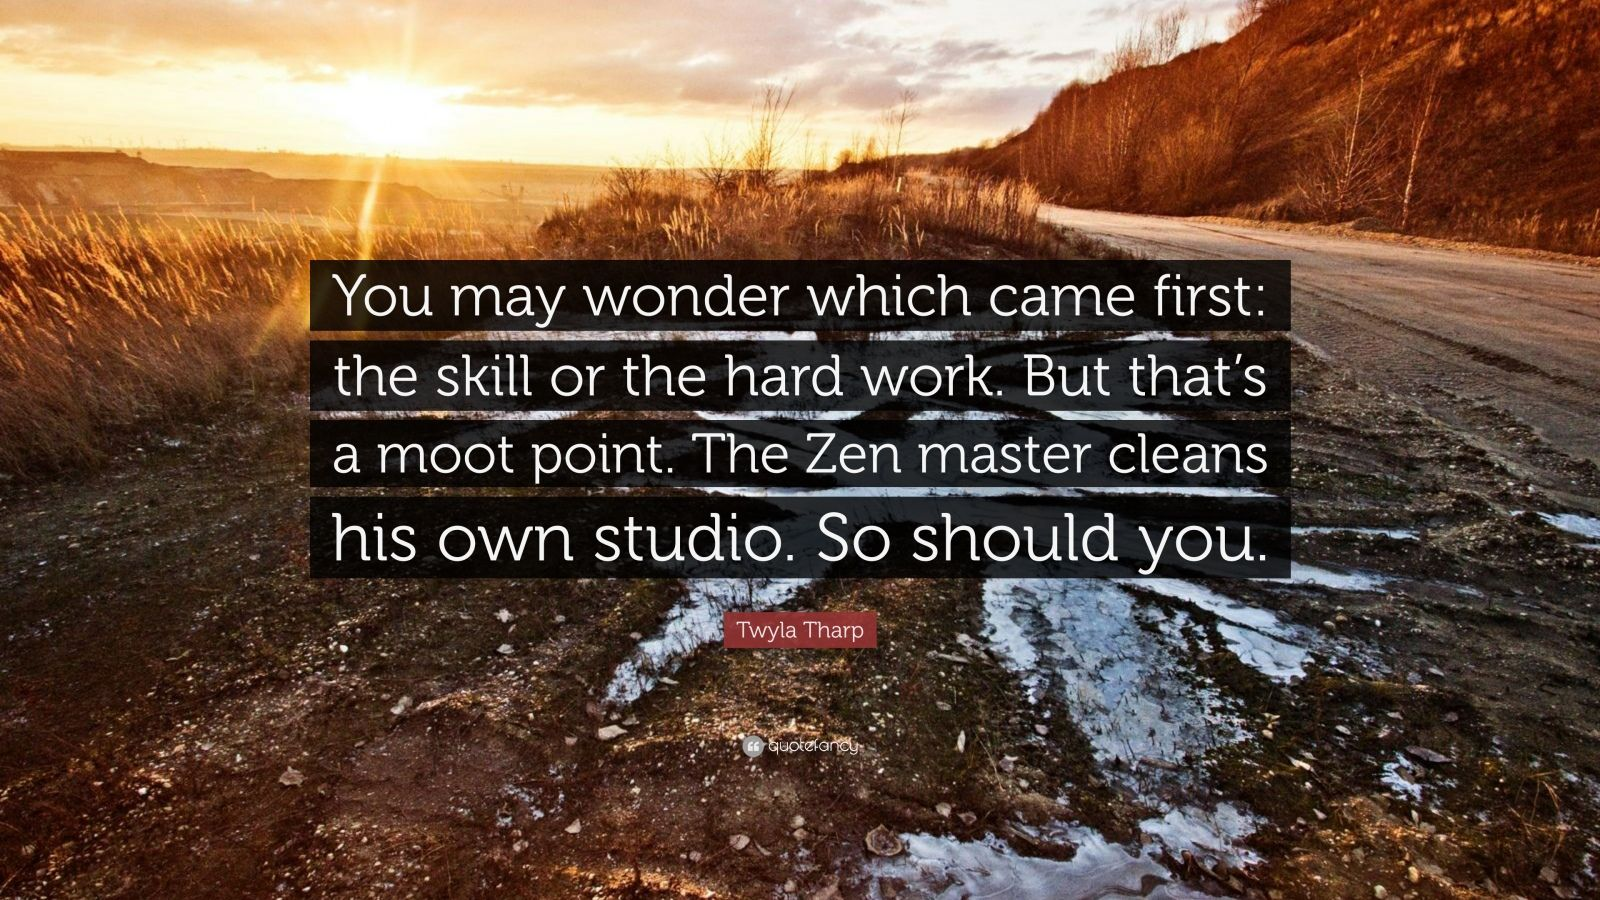 """Twyla Tharp Quote: """"You may wonder which came first: the skill or the hard work. But that's a moot point. The Zen master cleans his own studio. So should you."""""""